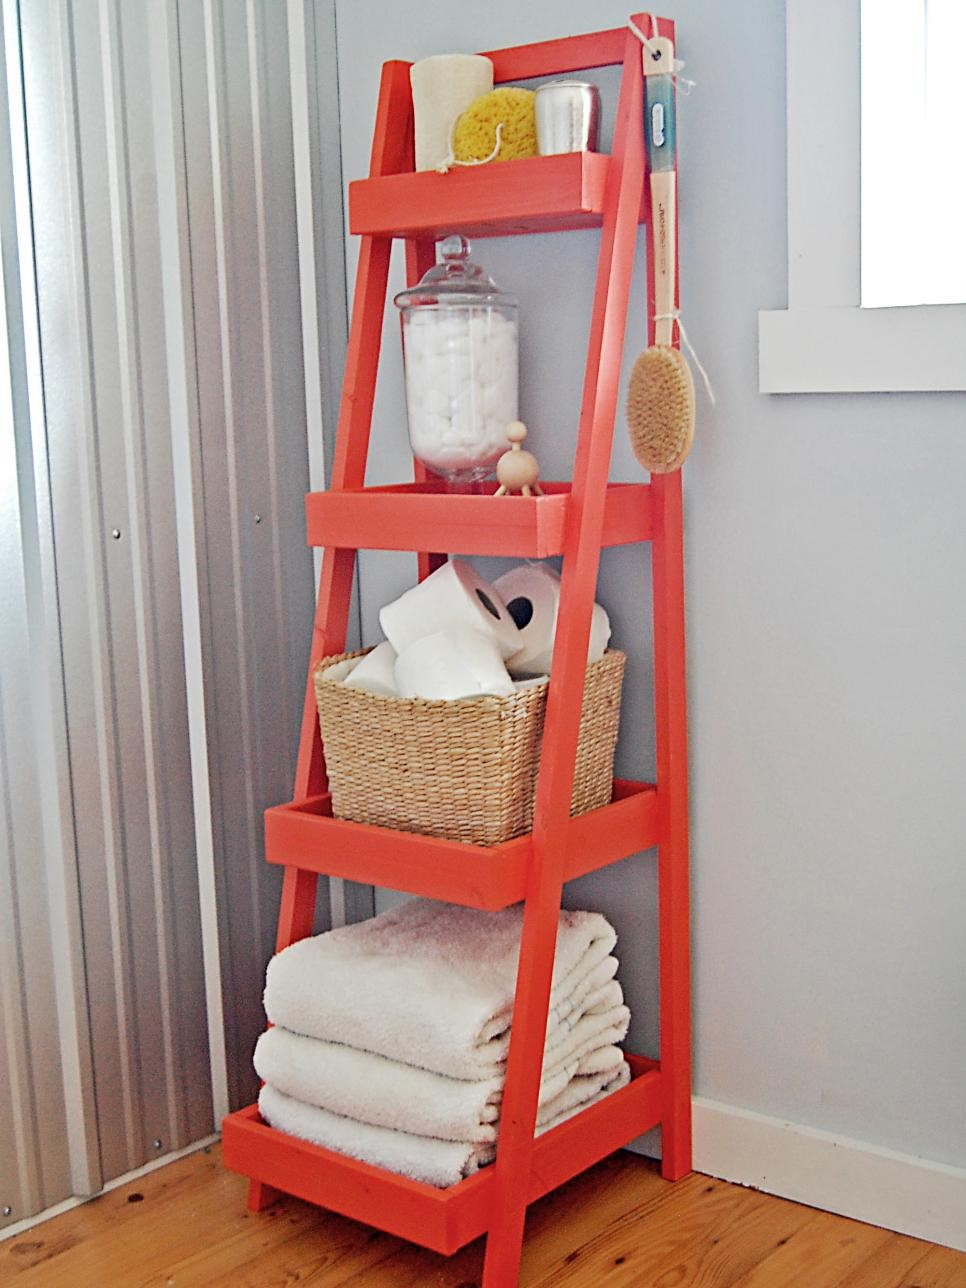 10 Ladder Shelves Simphome com